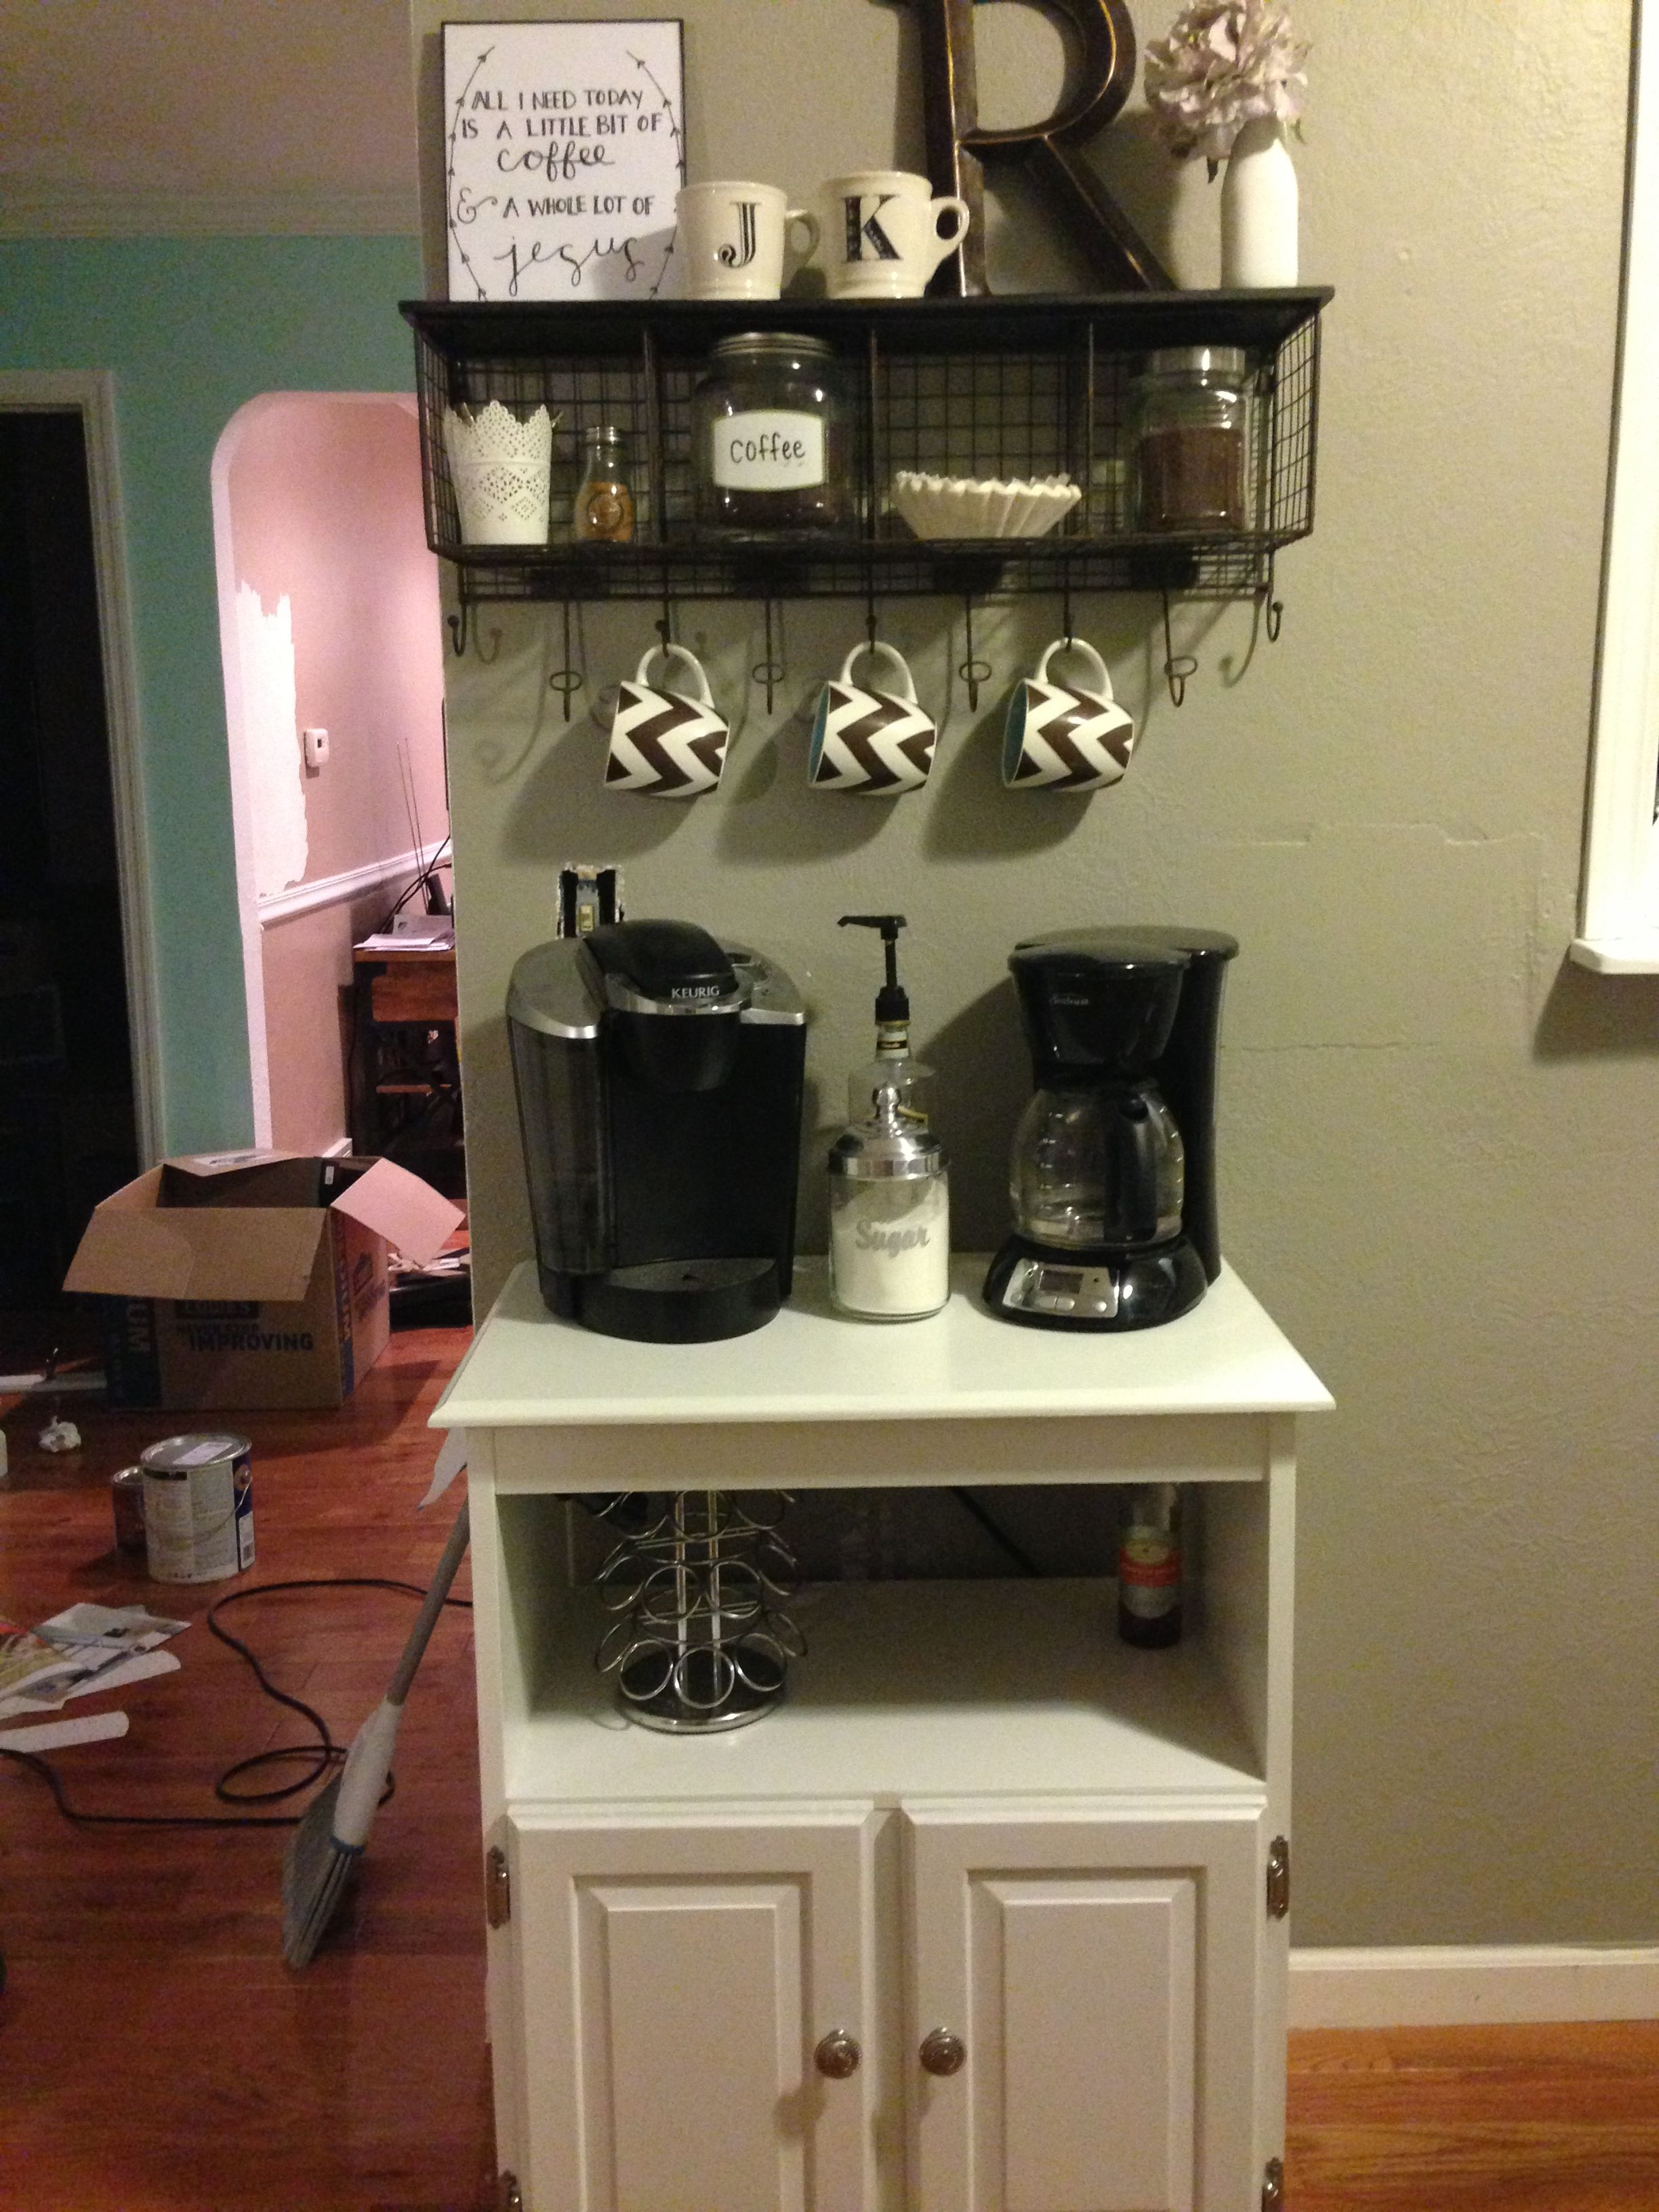 This Is A Cute Way To Do A Coffee Bar In A Small Space Kaitlyn